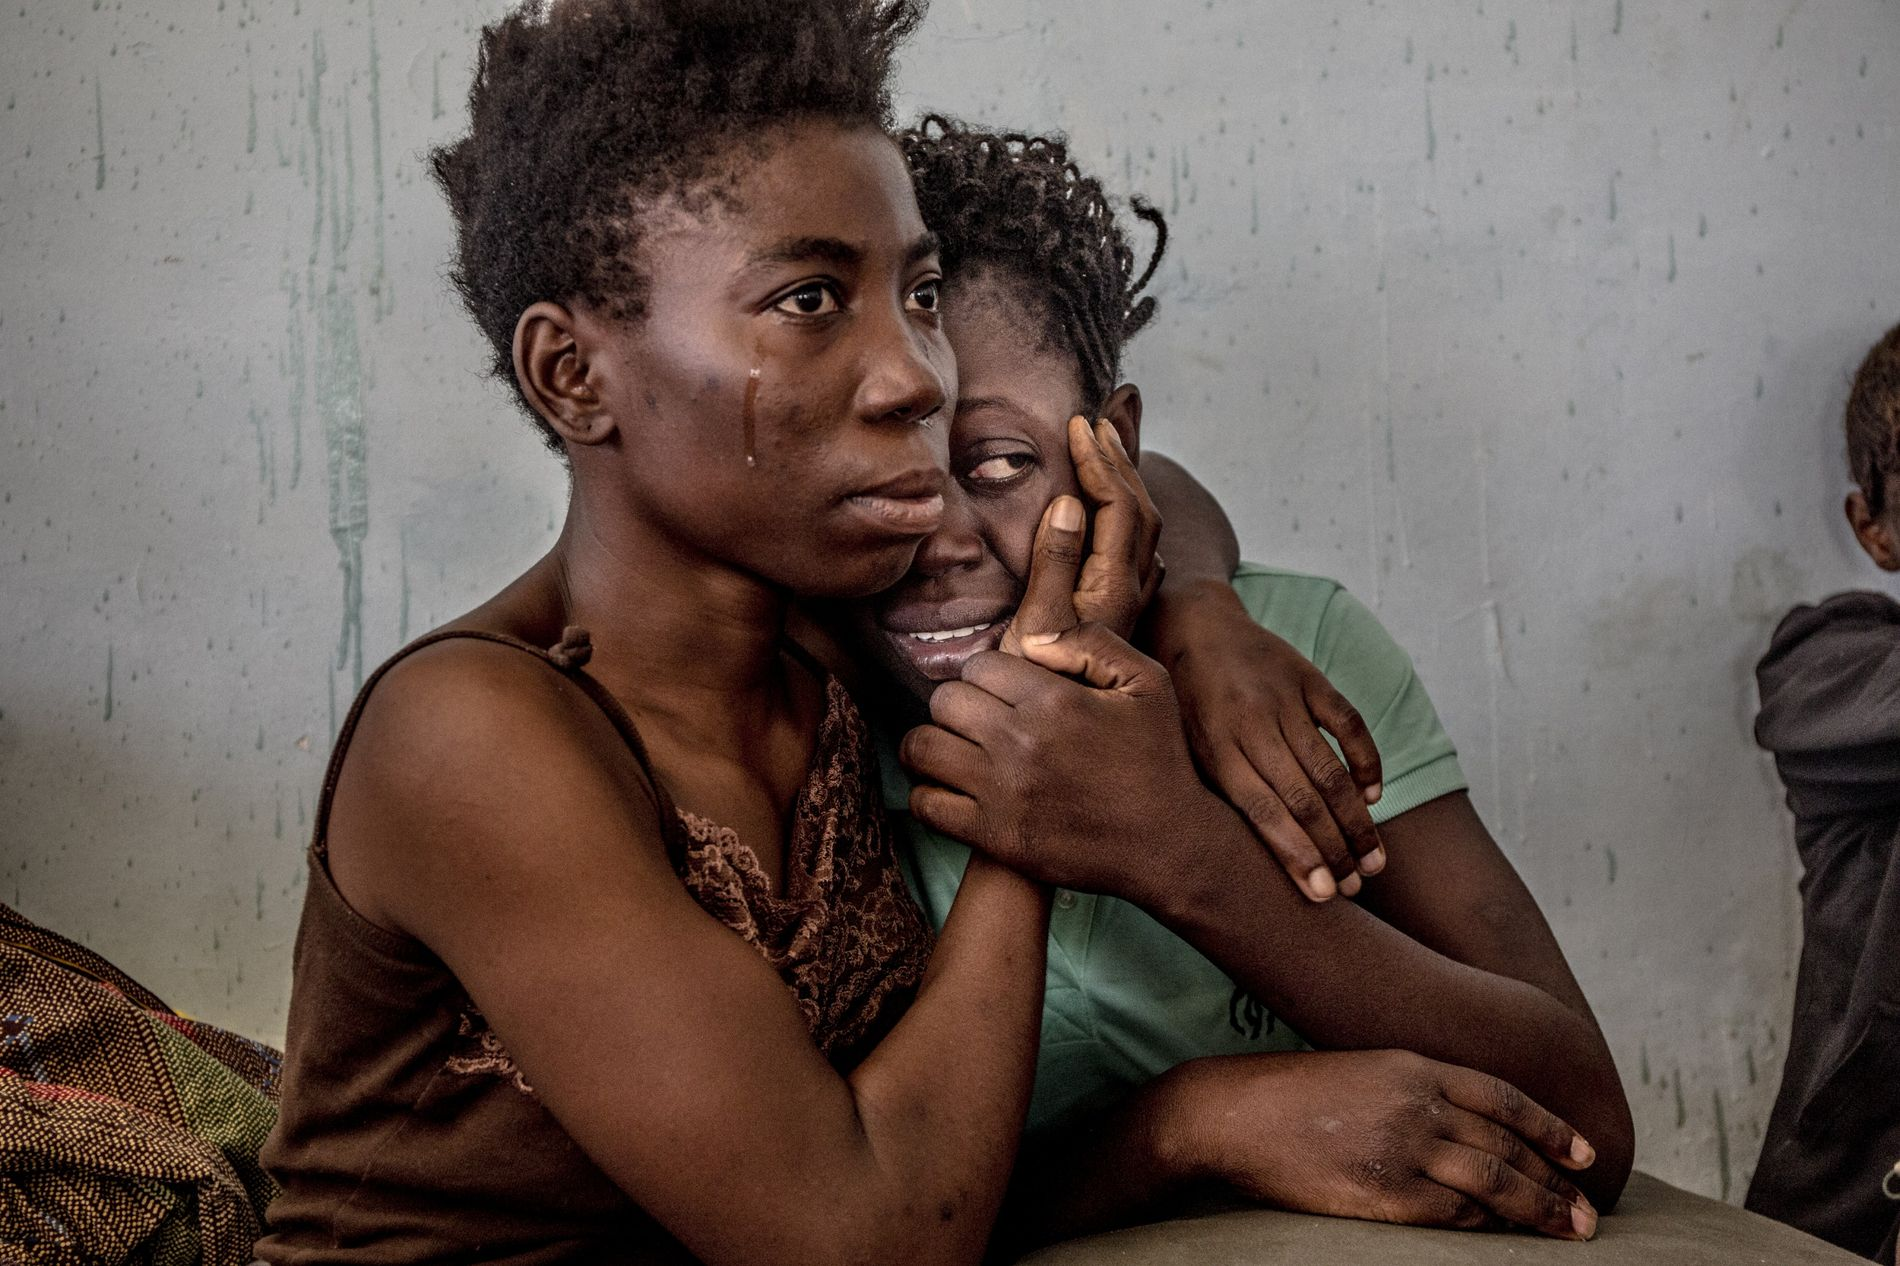 Nigeriaanse migranten in een emotionele omhelzing in een vluchtelingencentrum in Sorman, Libië, in augustus 2016. Er ...